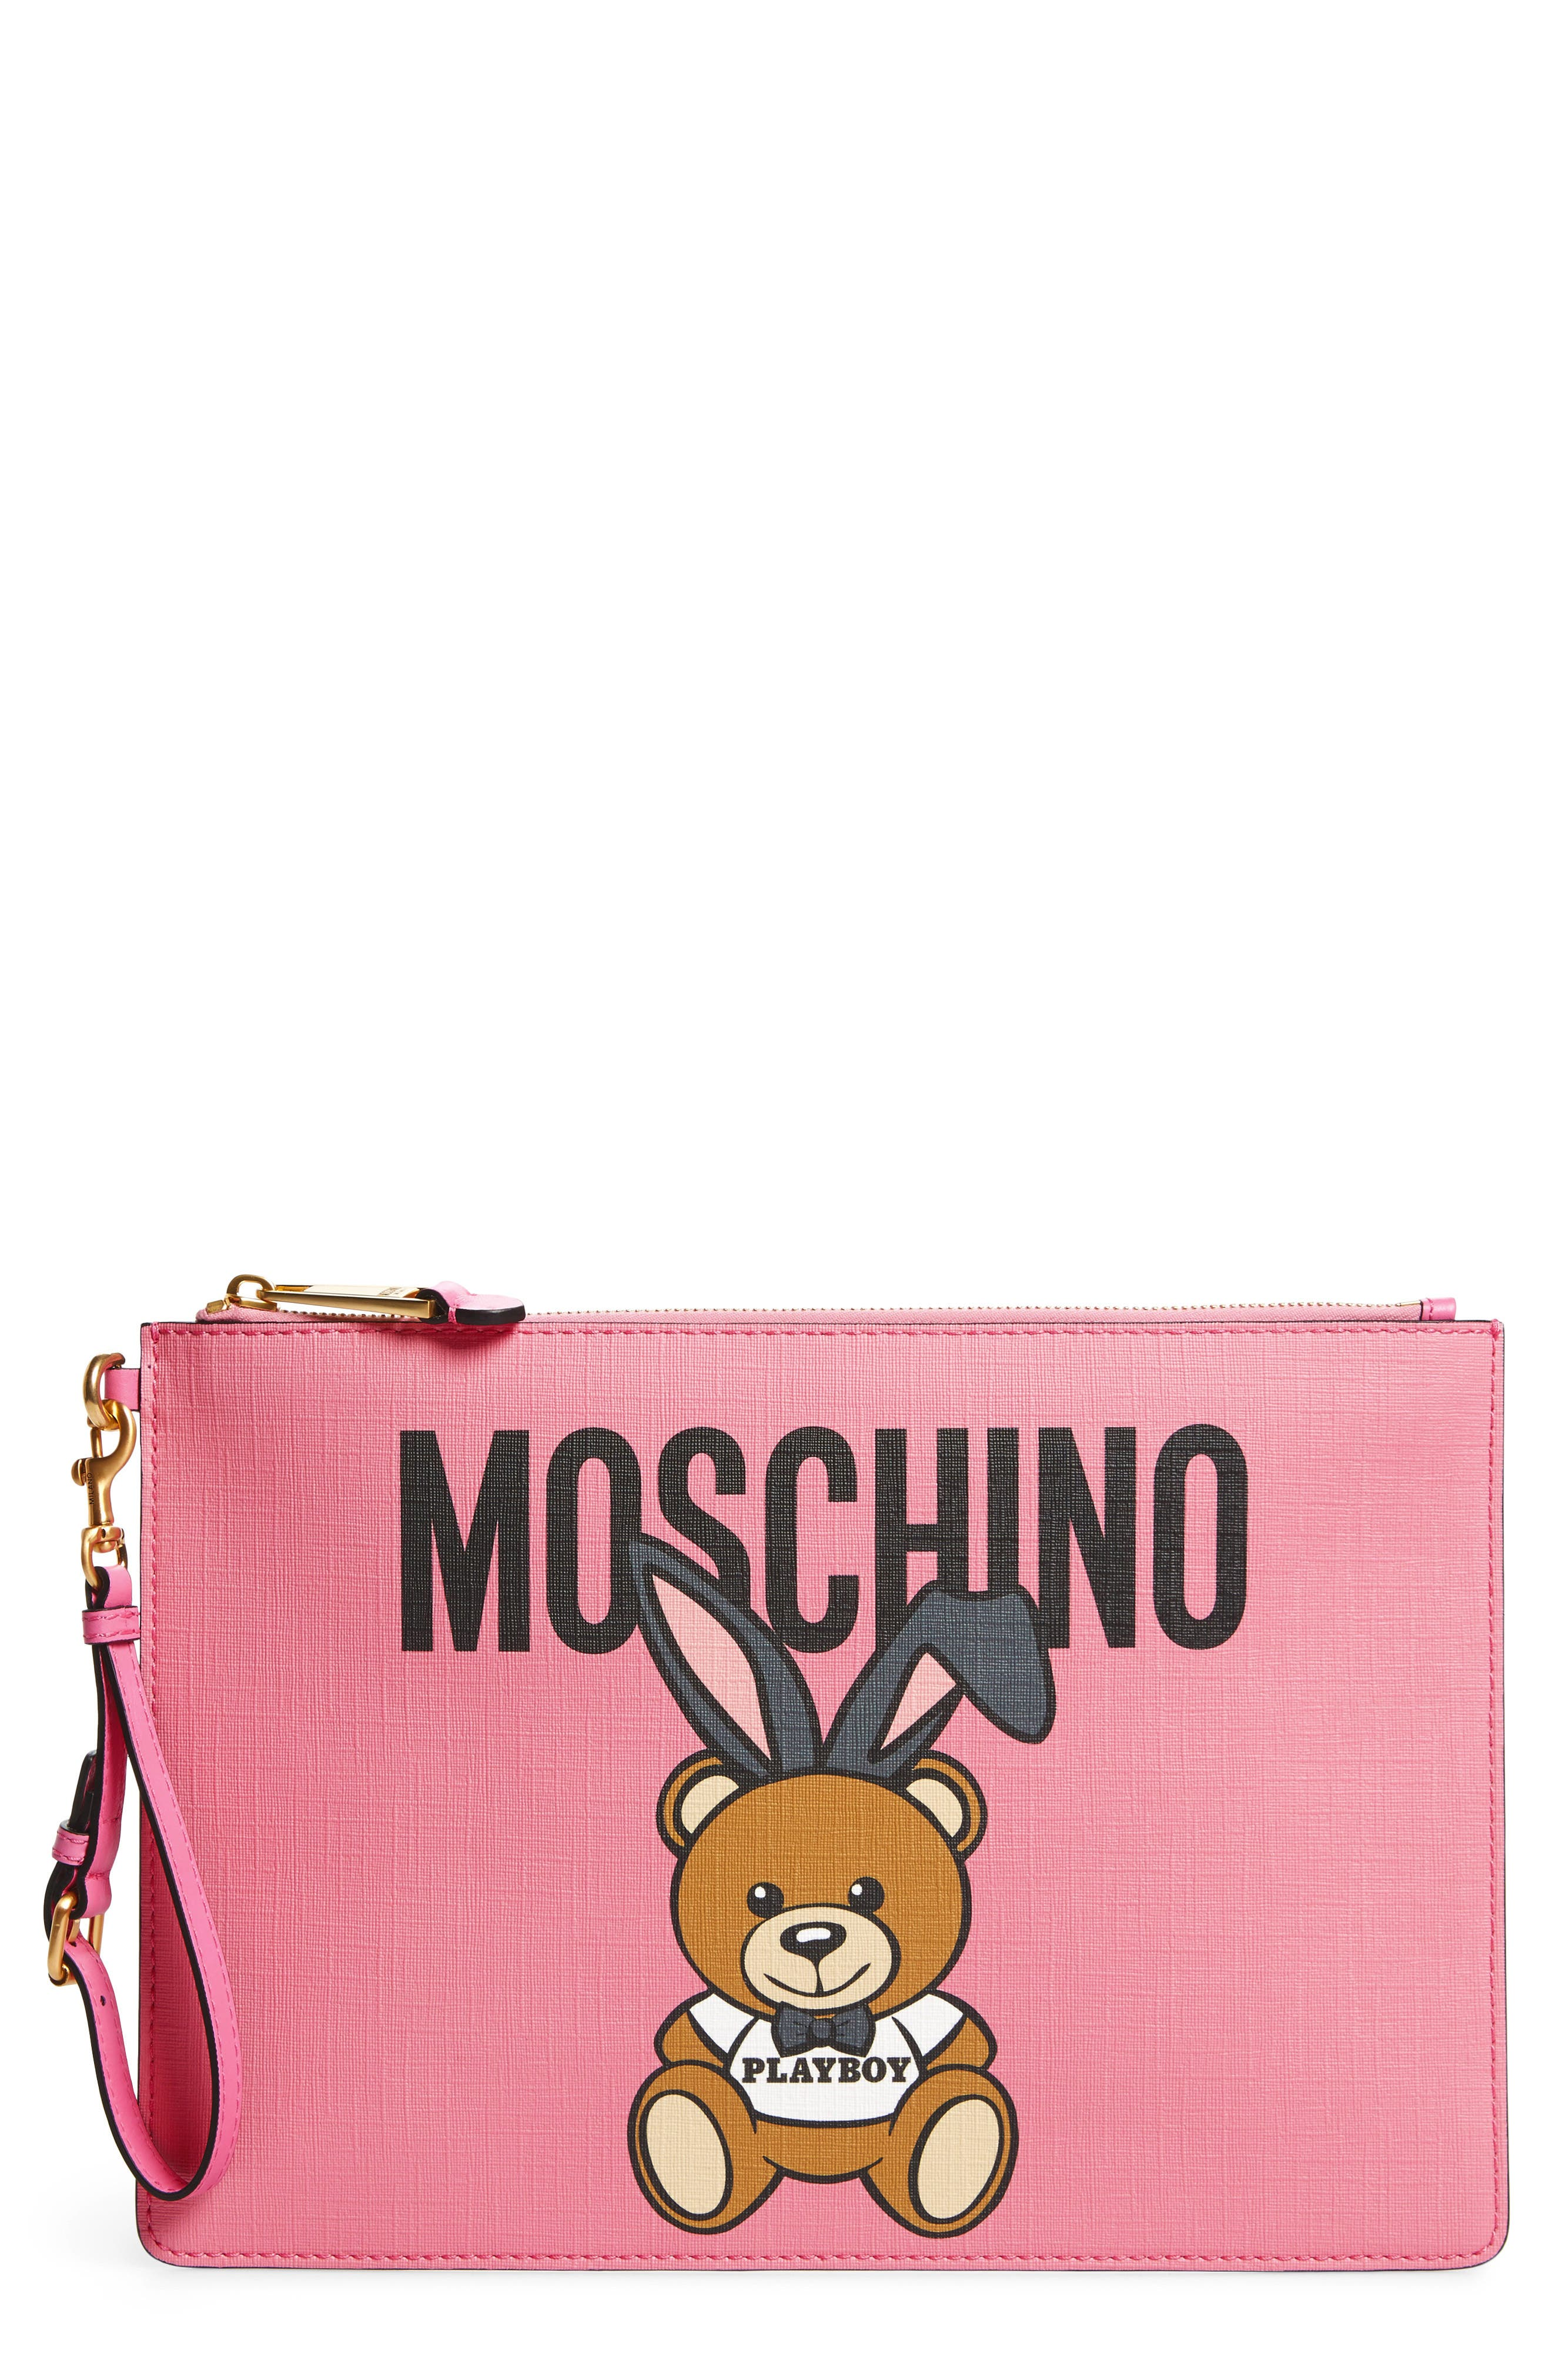 Moschino x Playboy Bunny Bear Leather Pouch